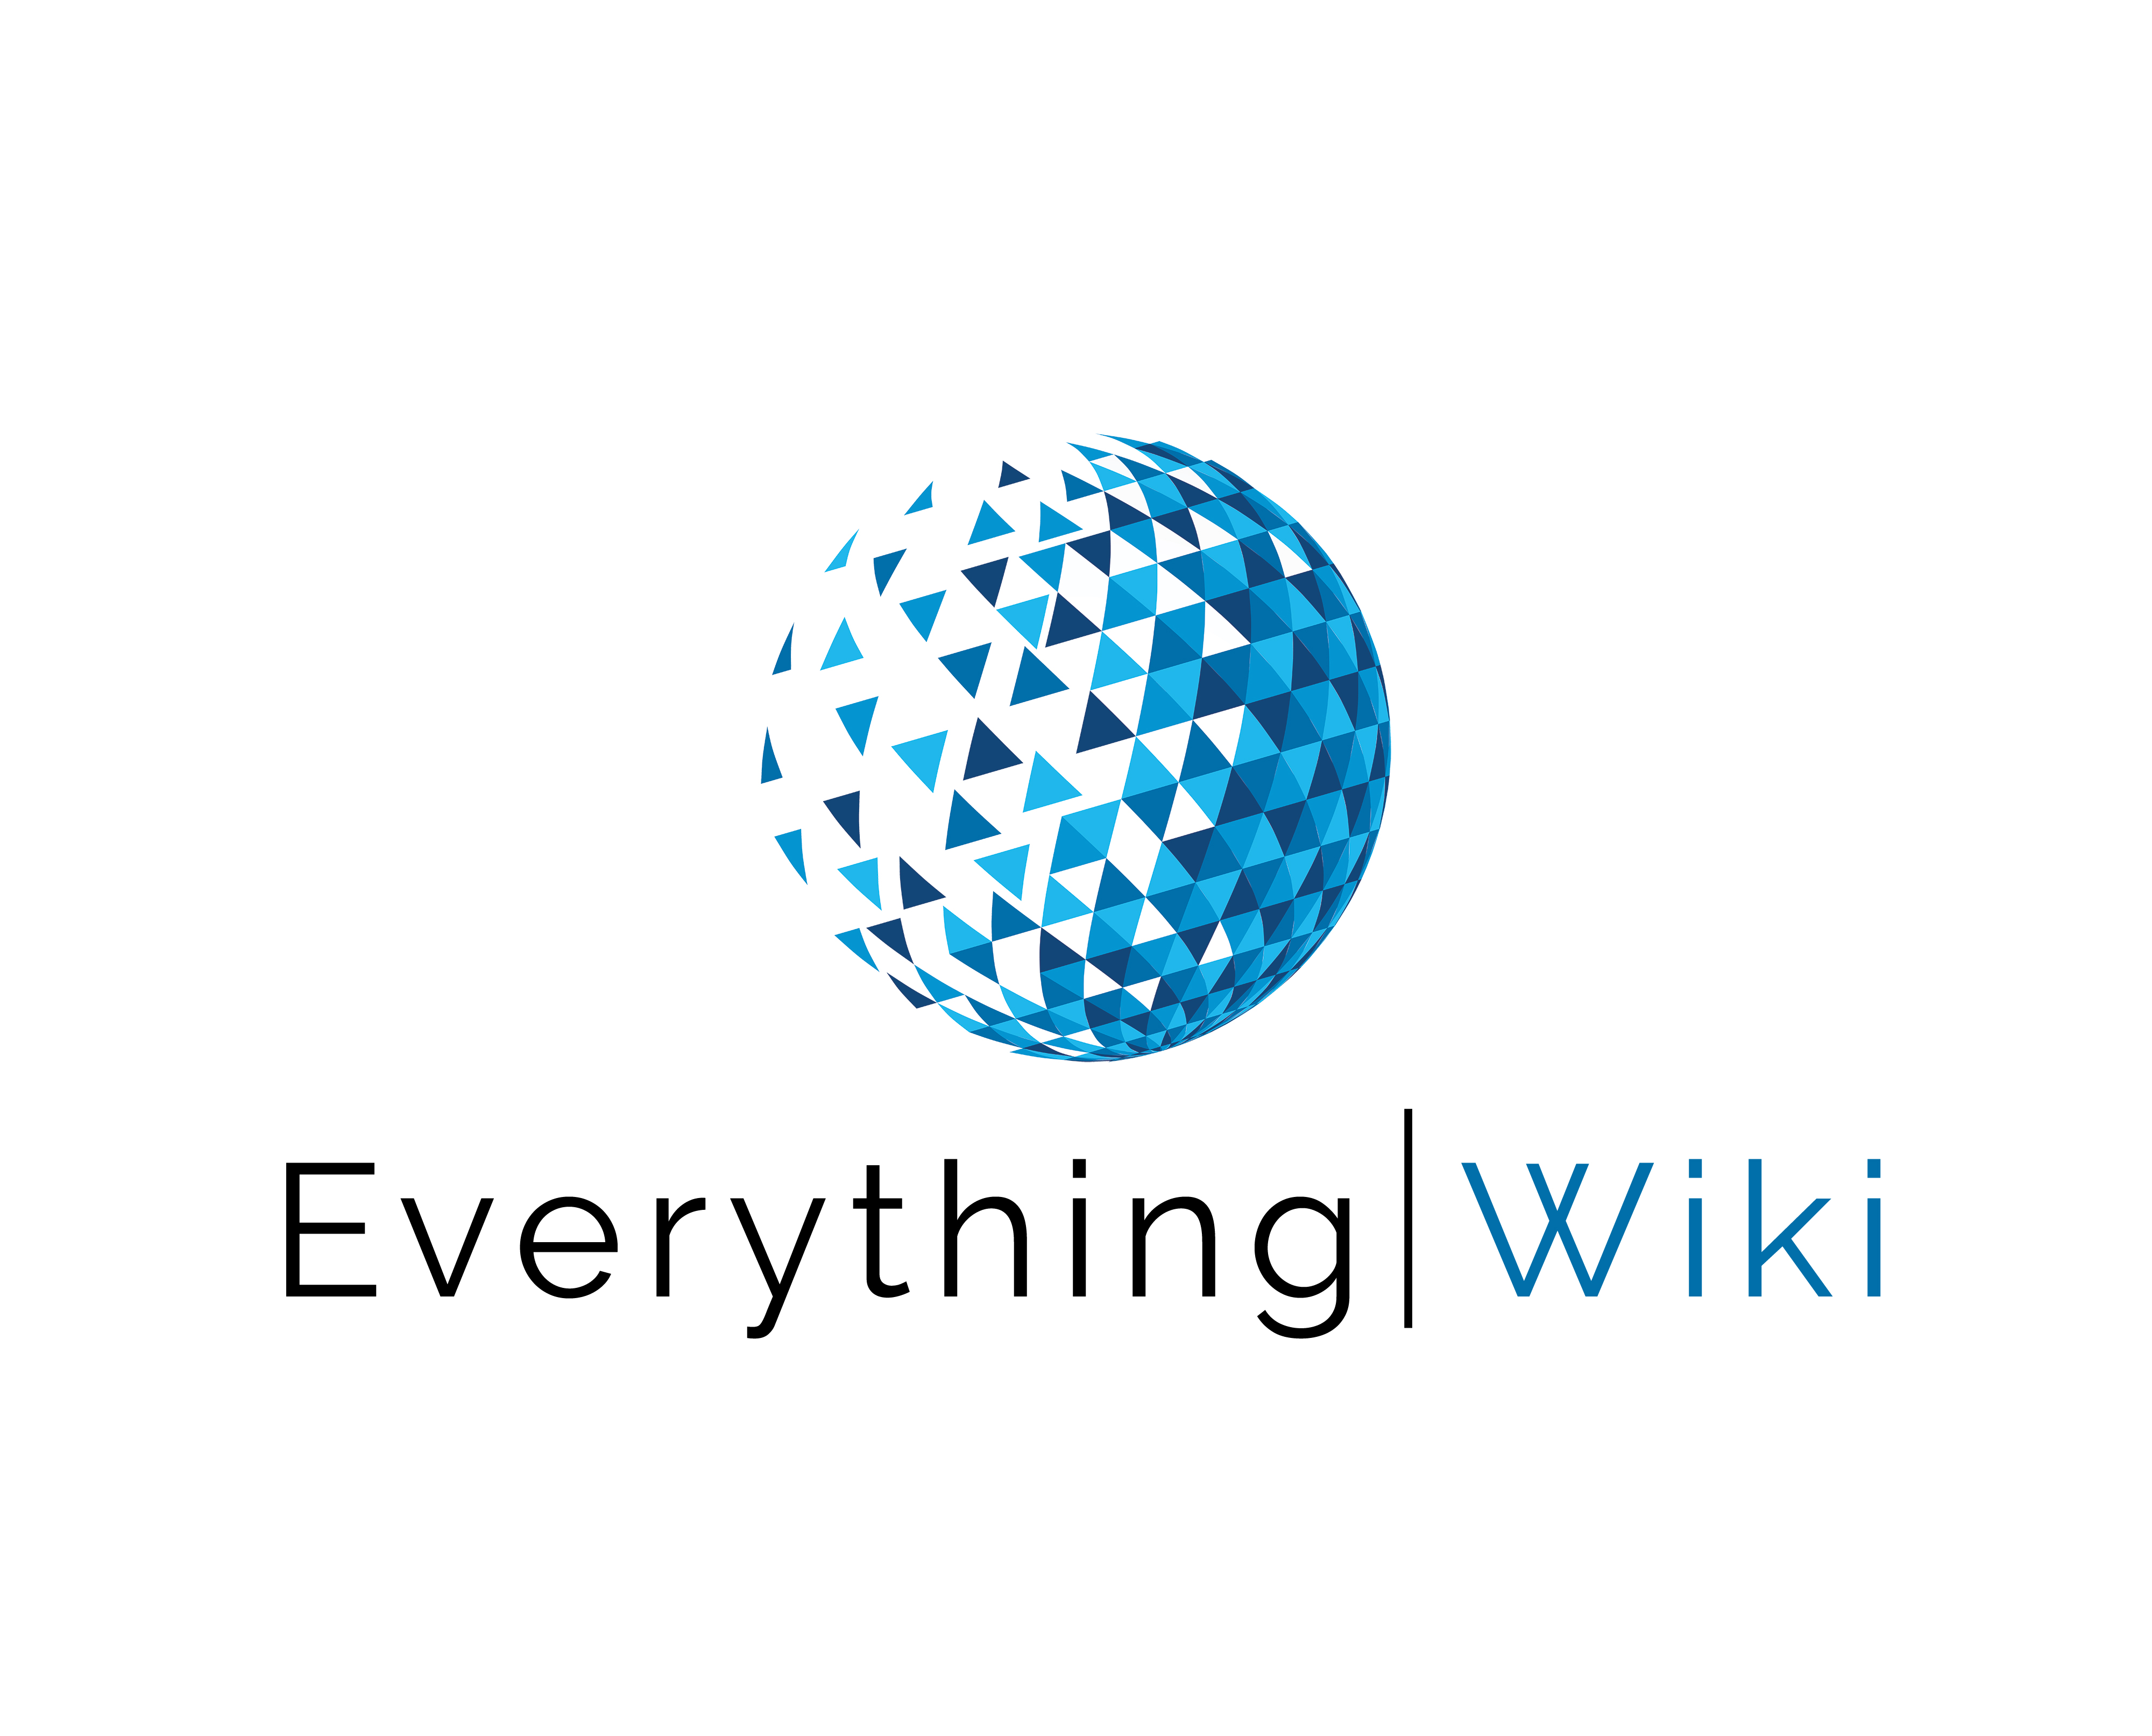 Become A Part of Everything|Wiki Community As A Moderator To Contribute, Educate & Get Rewarded